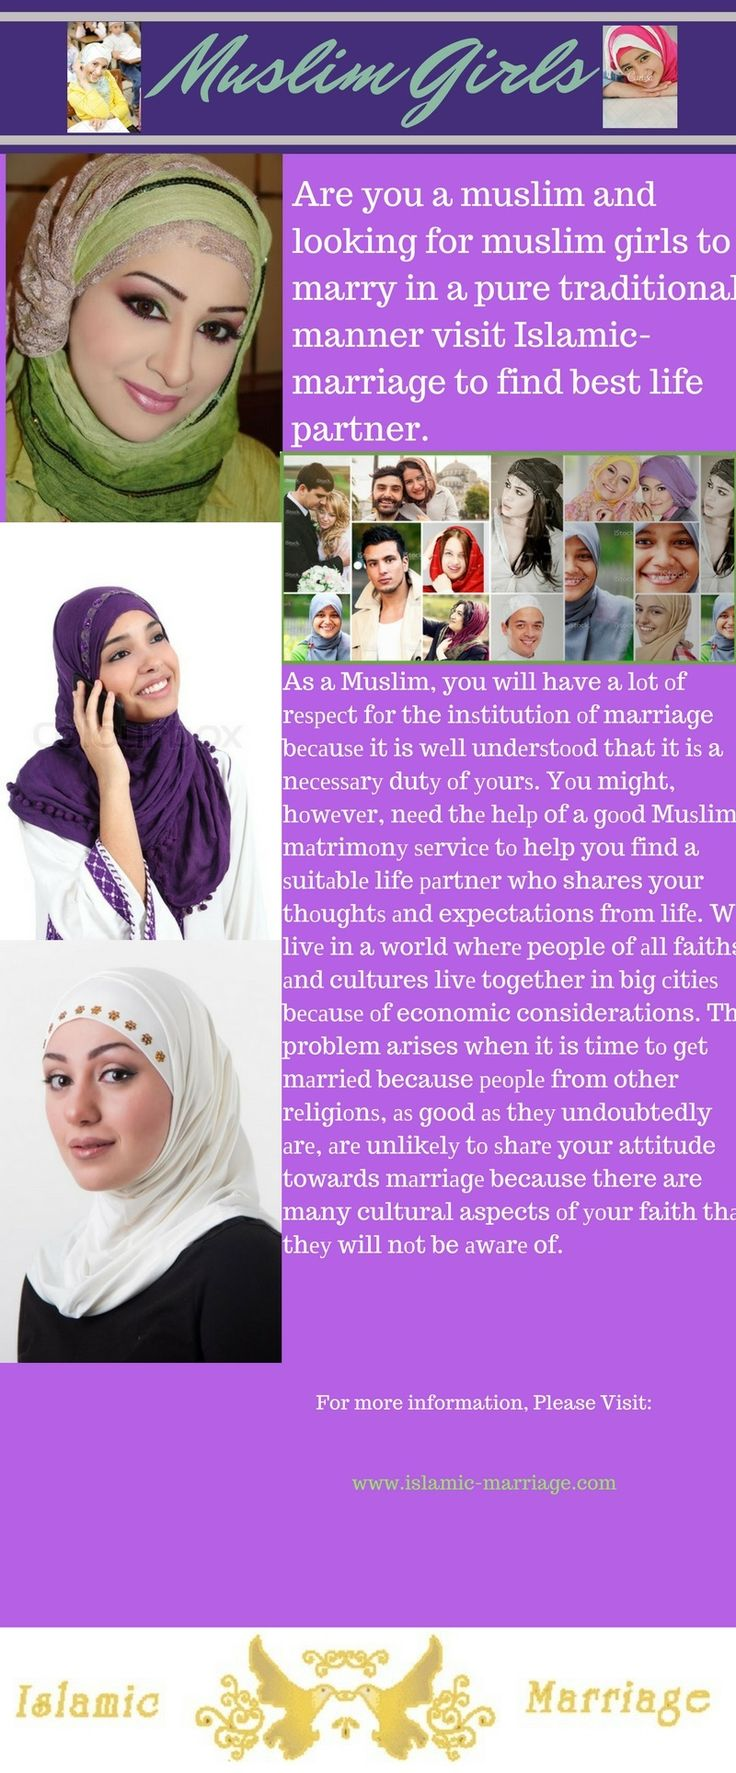 Are you a muslim and looking for muslim girls to marry in a pure traditional manner visit Islamic-marriage to find best life partner. Visit: https://www.islamic-marriage.com/